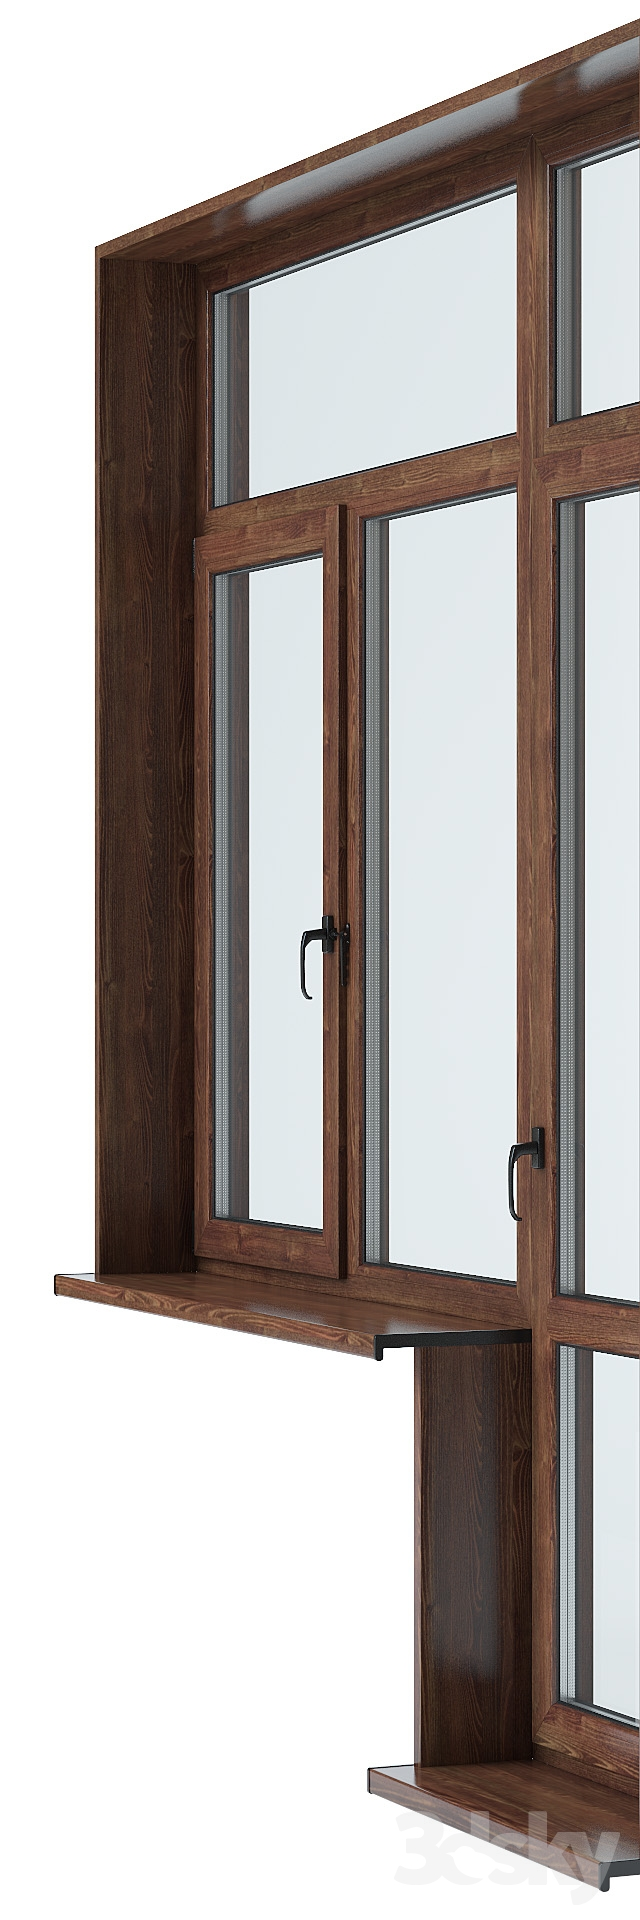 3d models windows 2 0 balcony door for Balcony models